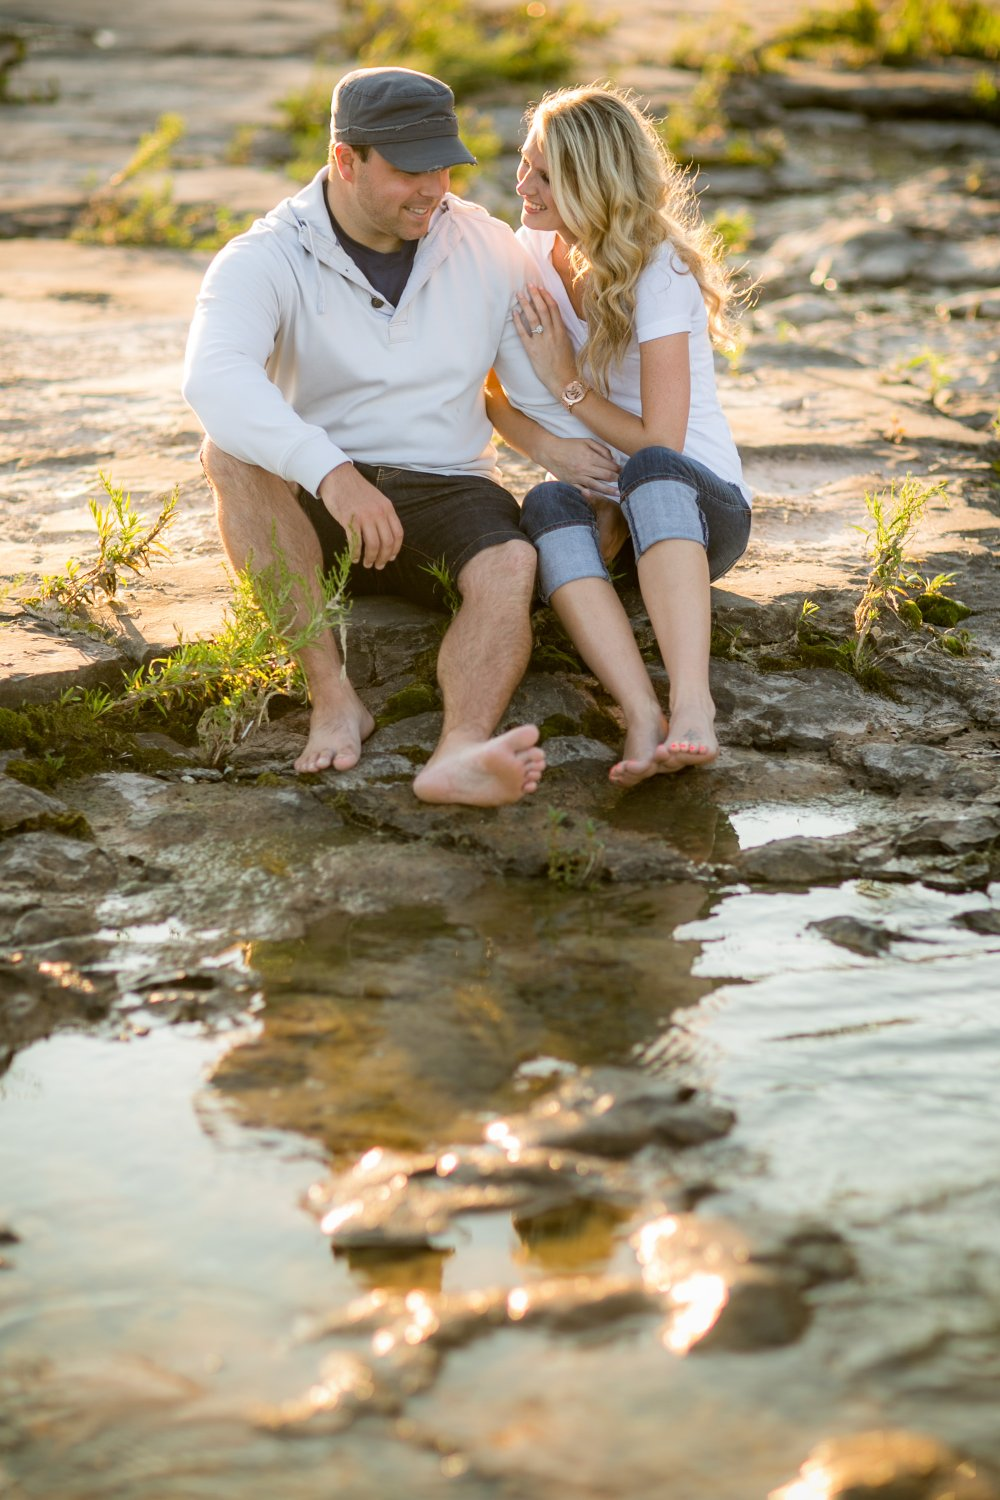 JF Hannigan Photography Engagement Session: Jenna and Brad: from shore to shore 11